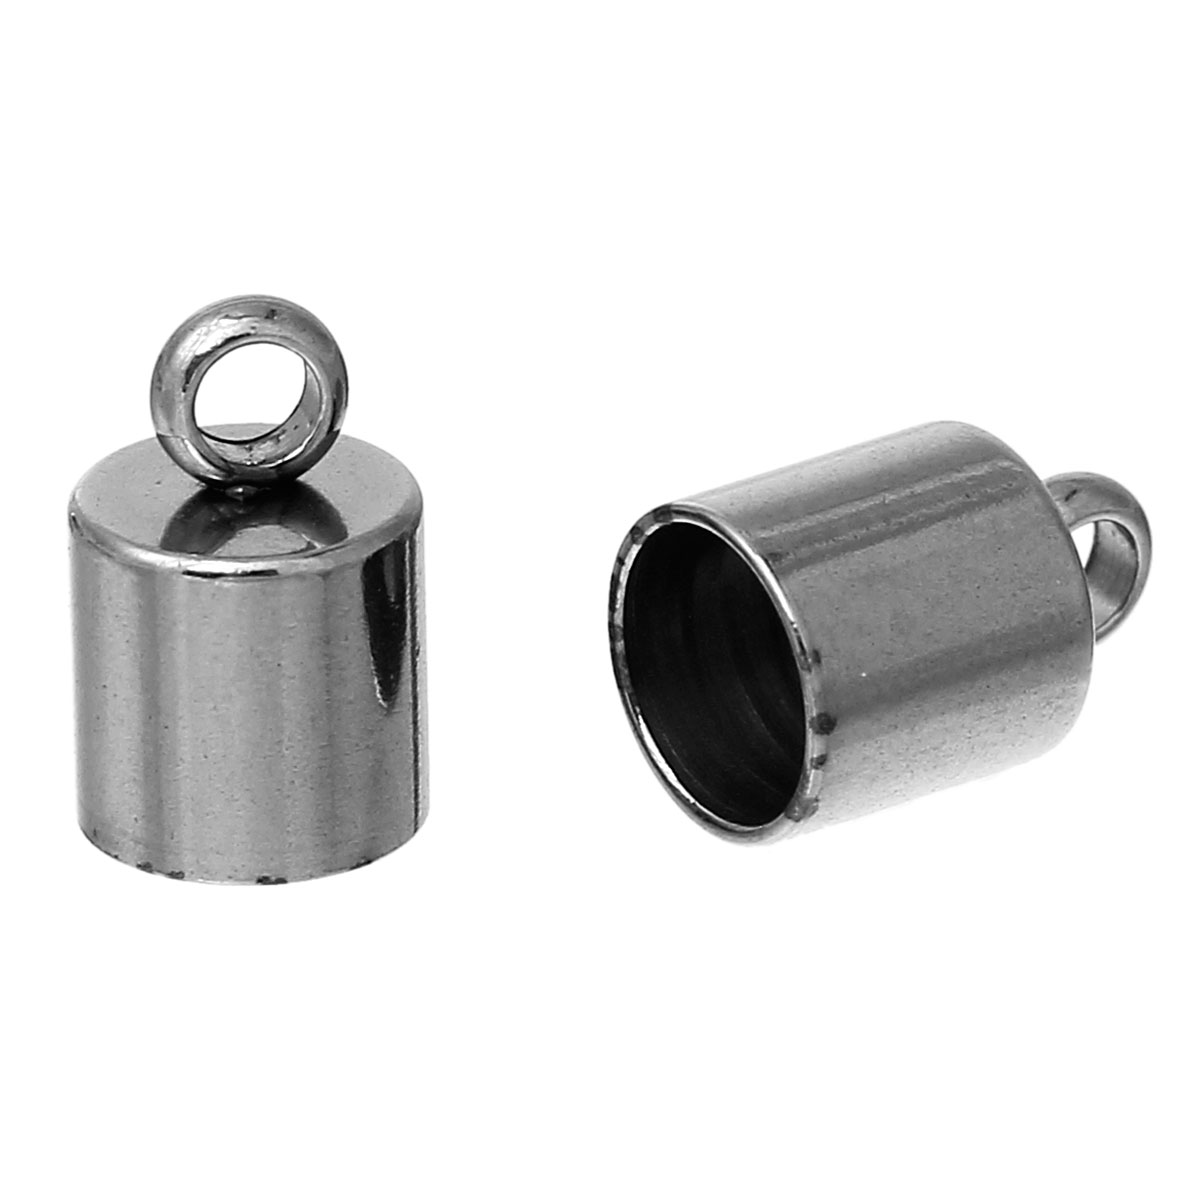 Stainless Steel Necklace Cord End Tips Cylinder Gunmetal 9mm(3/8)x 6mm(2/8),30 PCs new